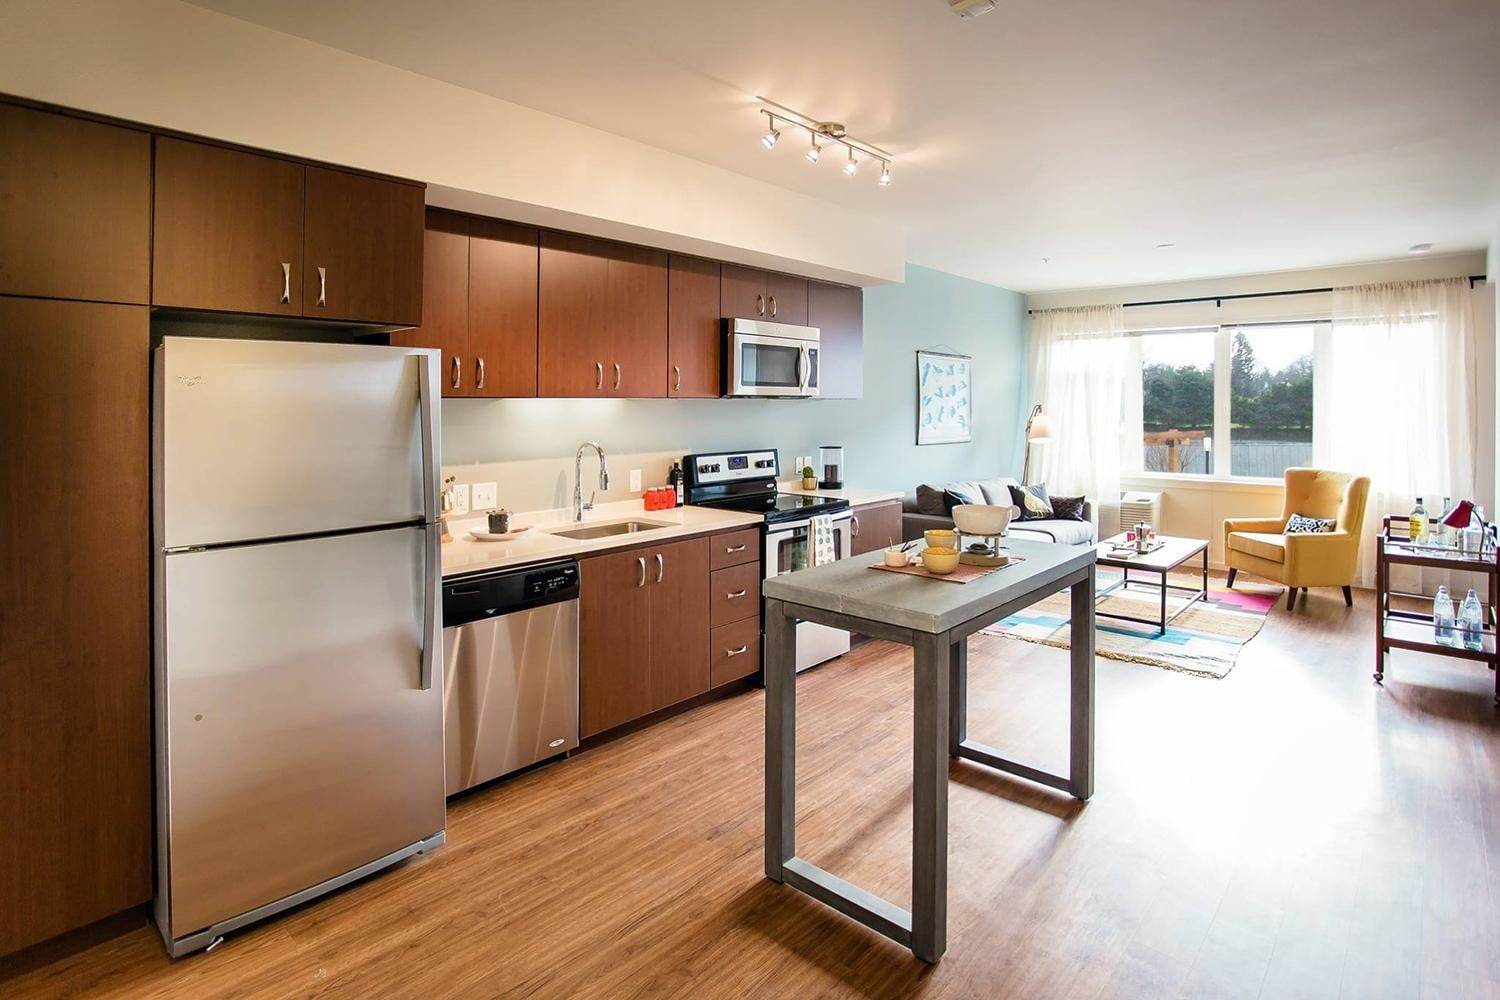 iotas is making smart apartments more automated grant park village portland or 018